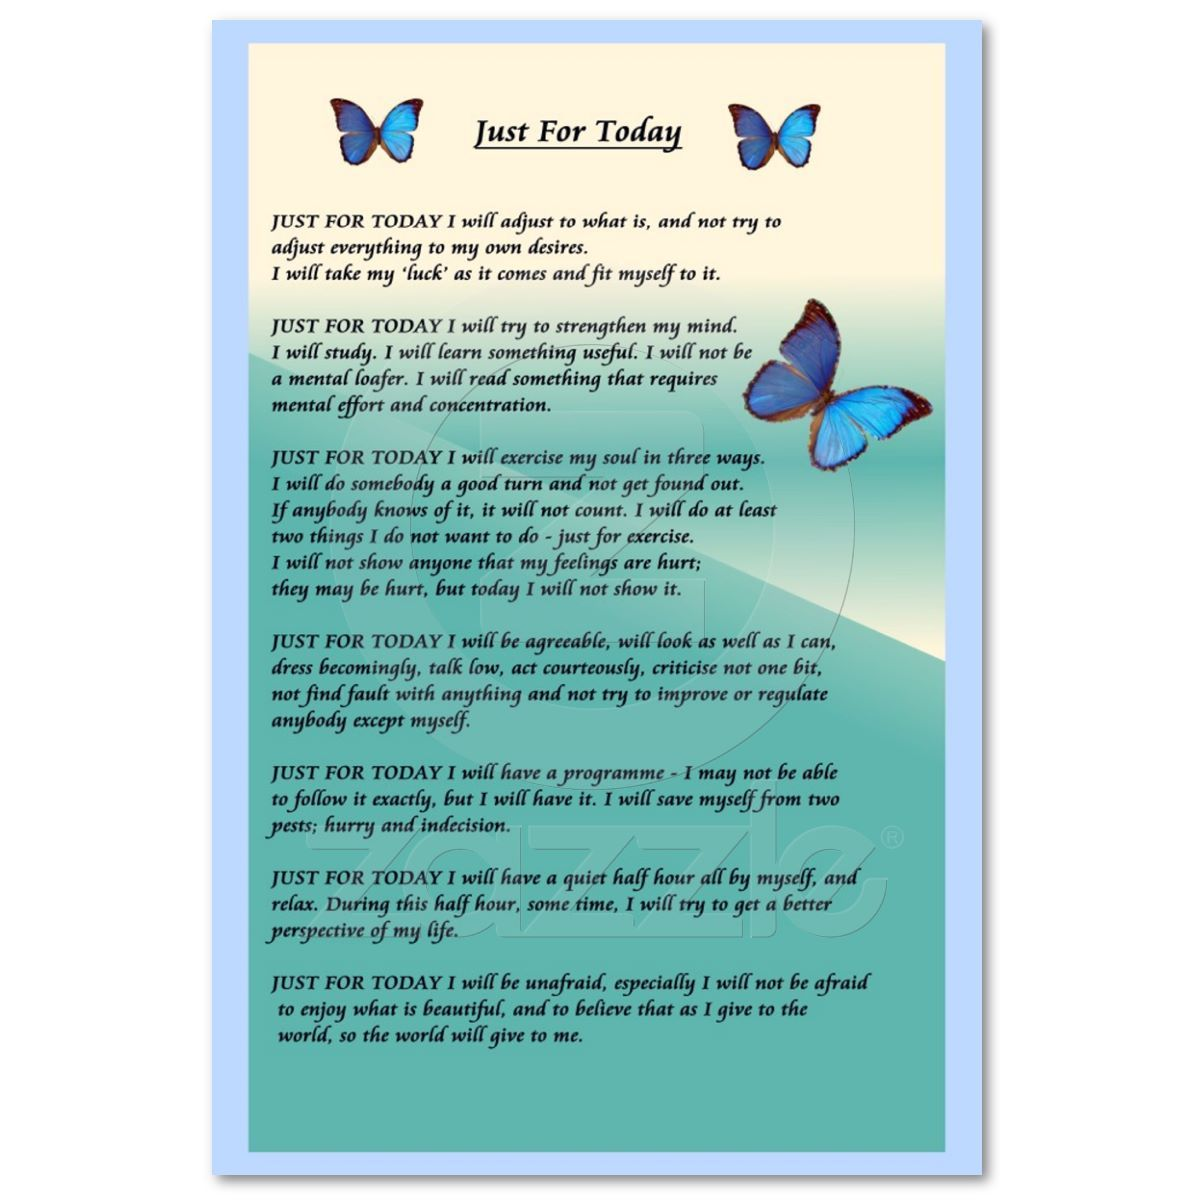 12 Step And Recovery Posters 12 Steps Recovery Alcoholics Anonymous Support Addictions